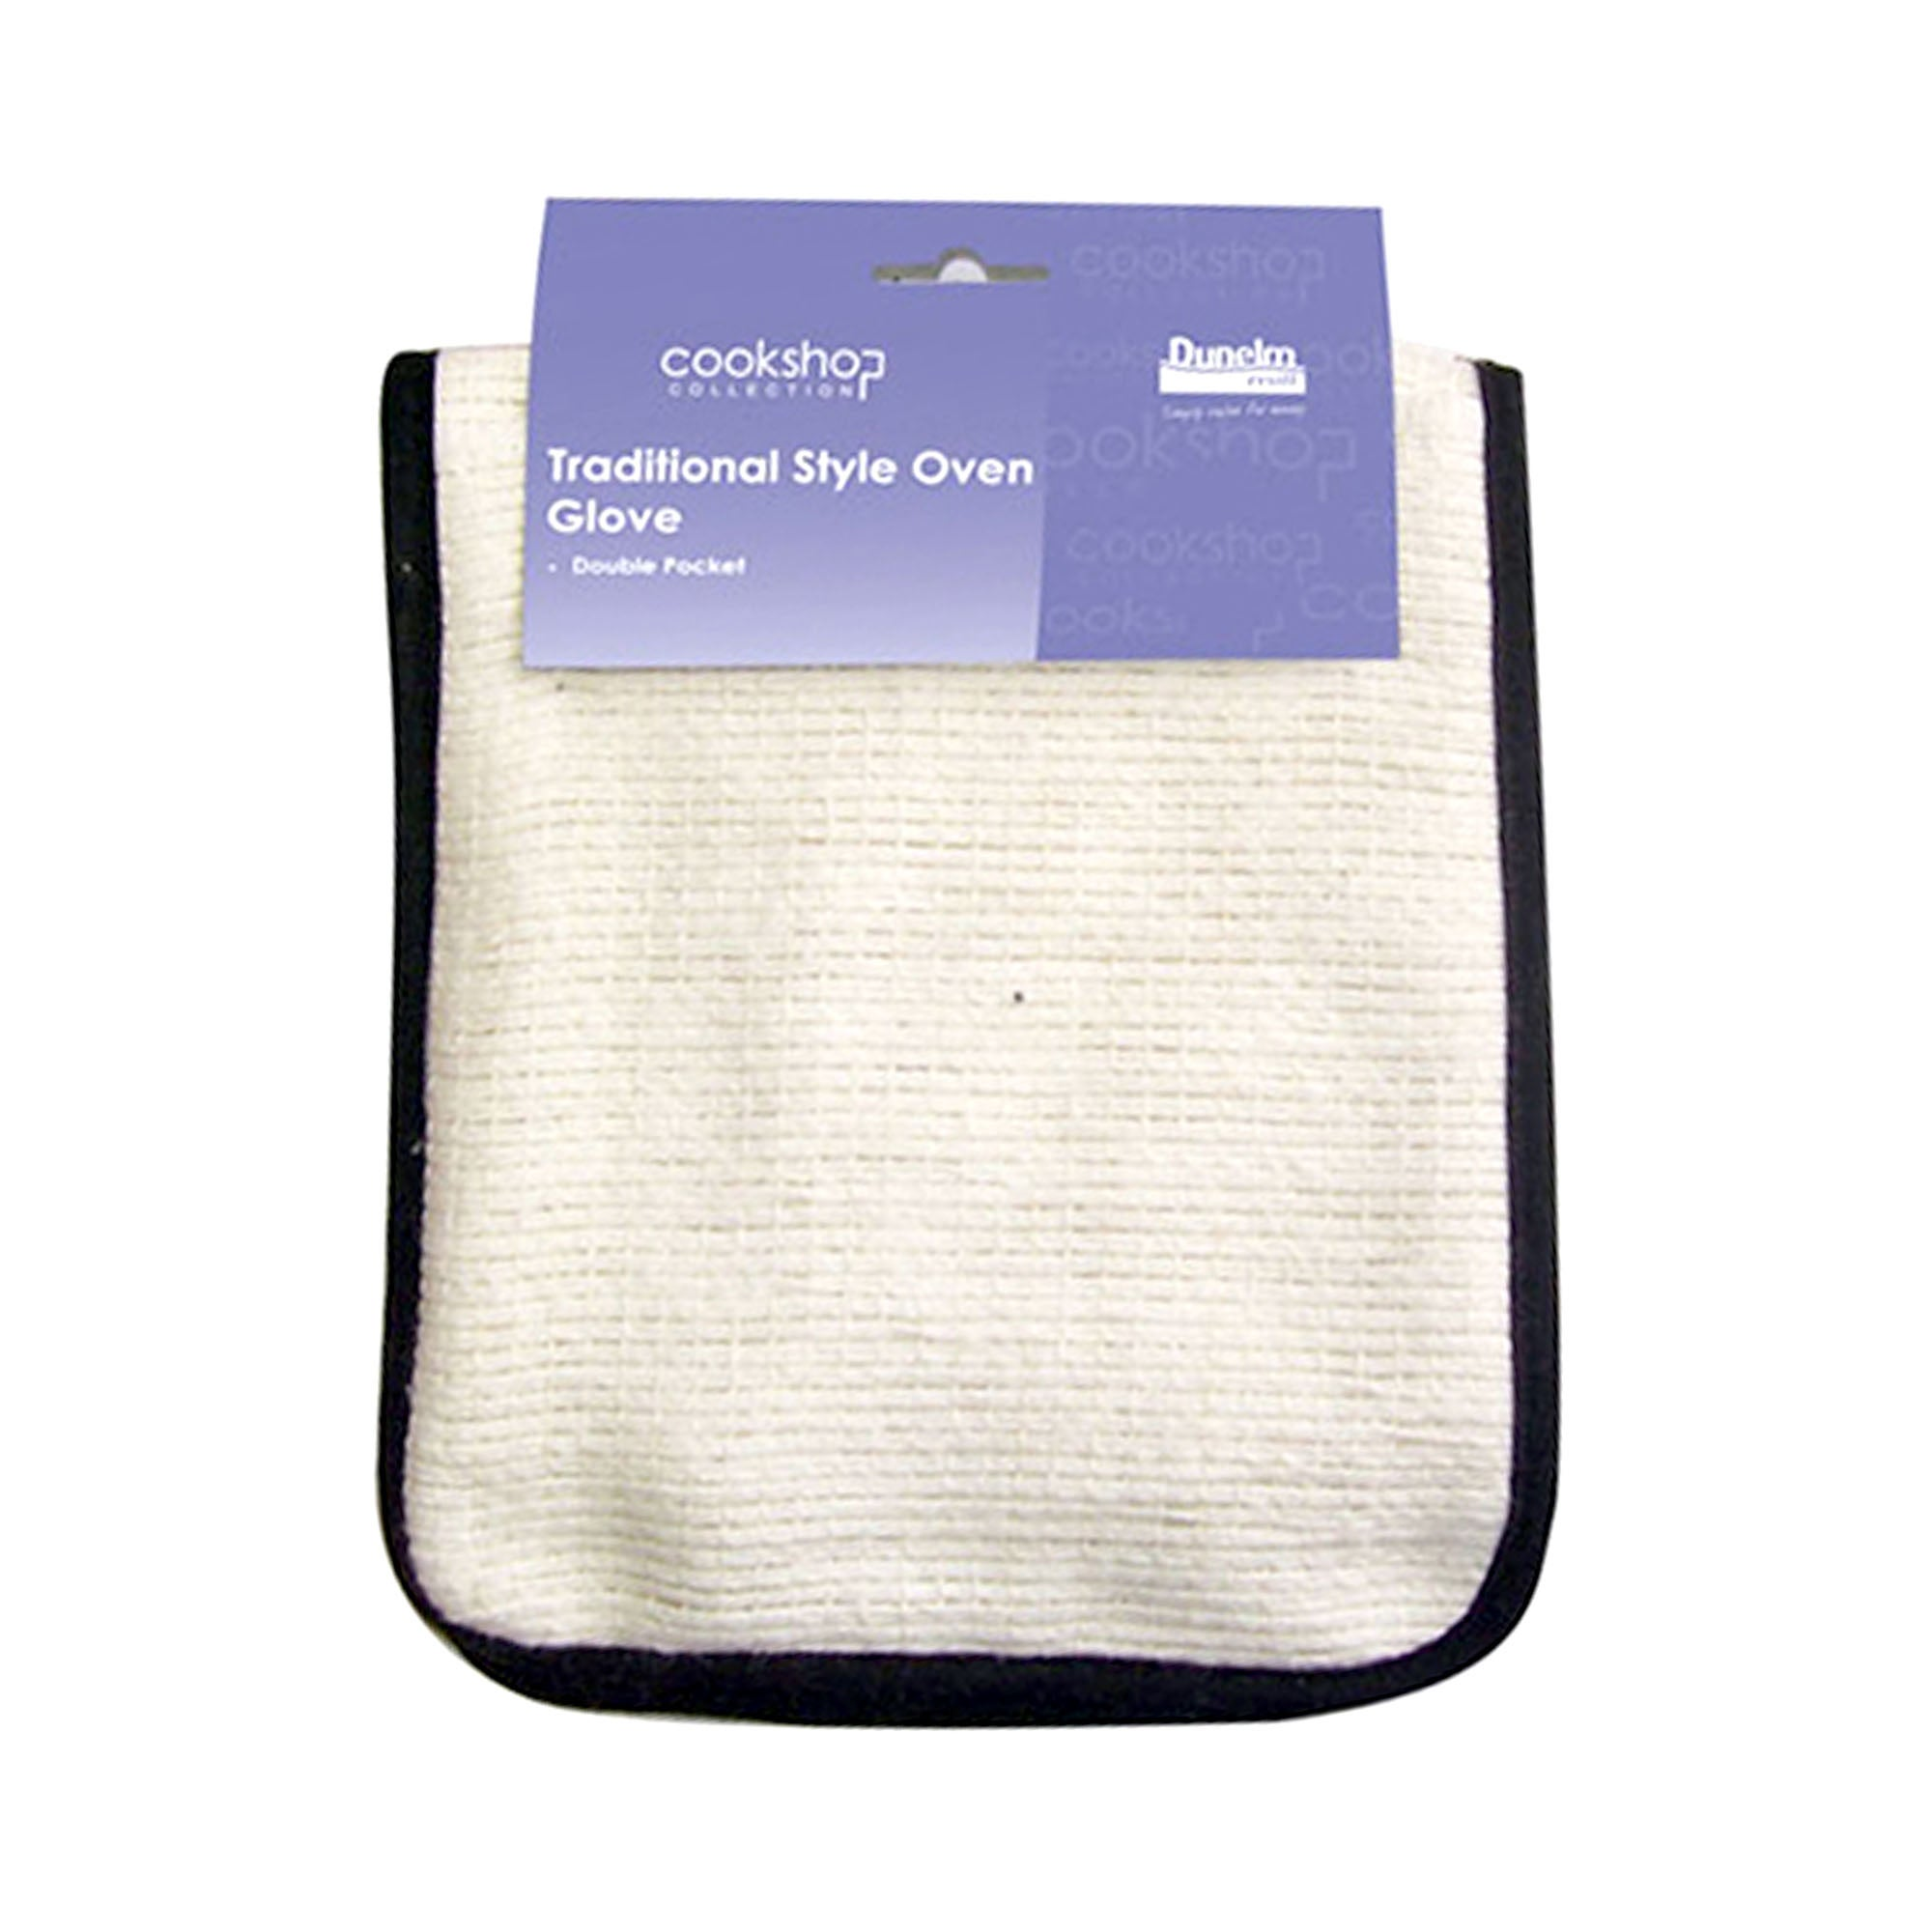 Cookshop Collection Traditional Double Pocket Oven Glove